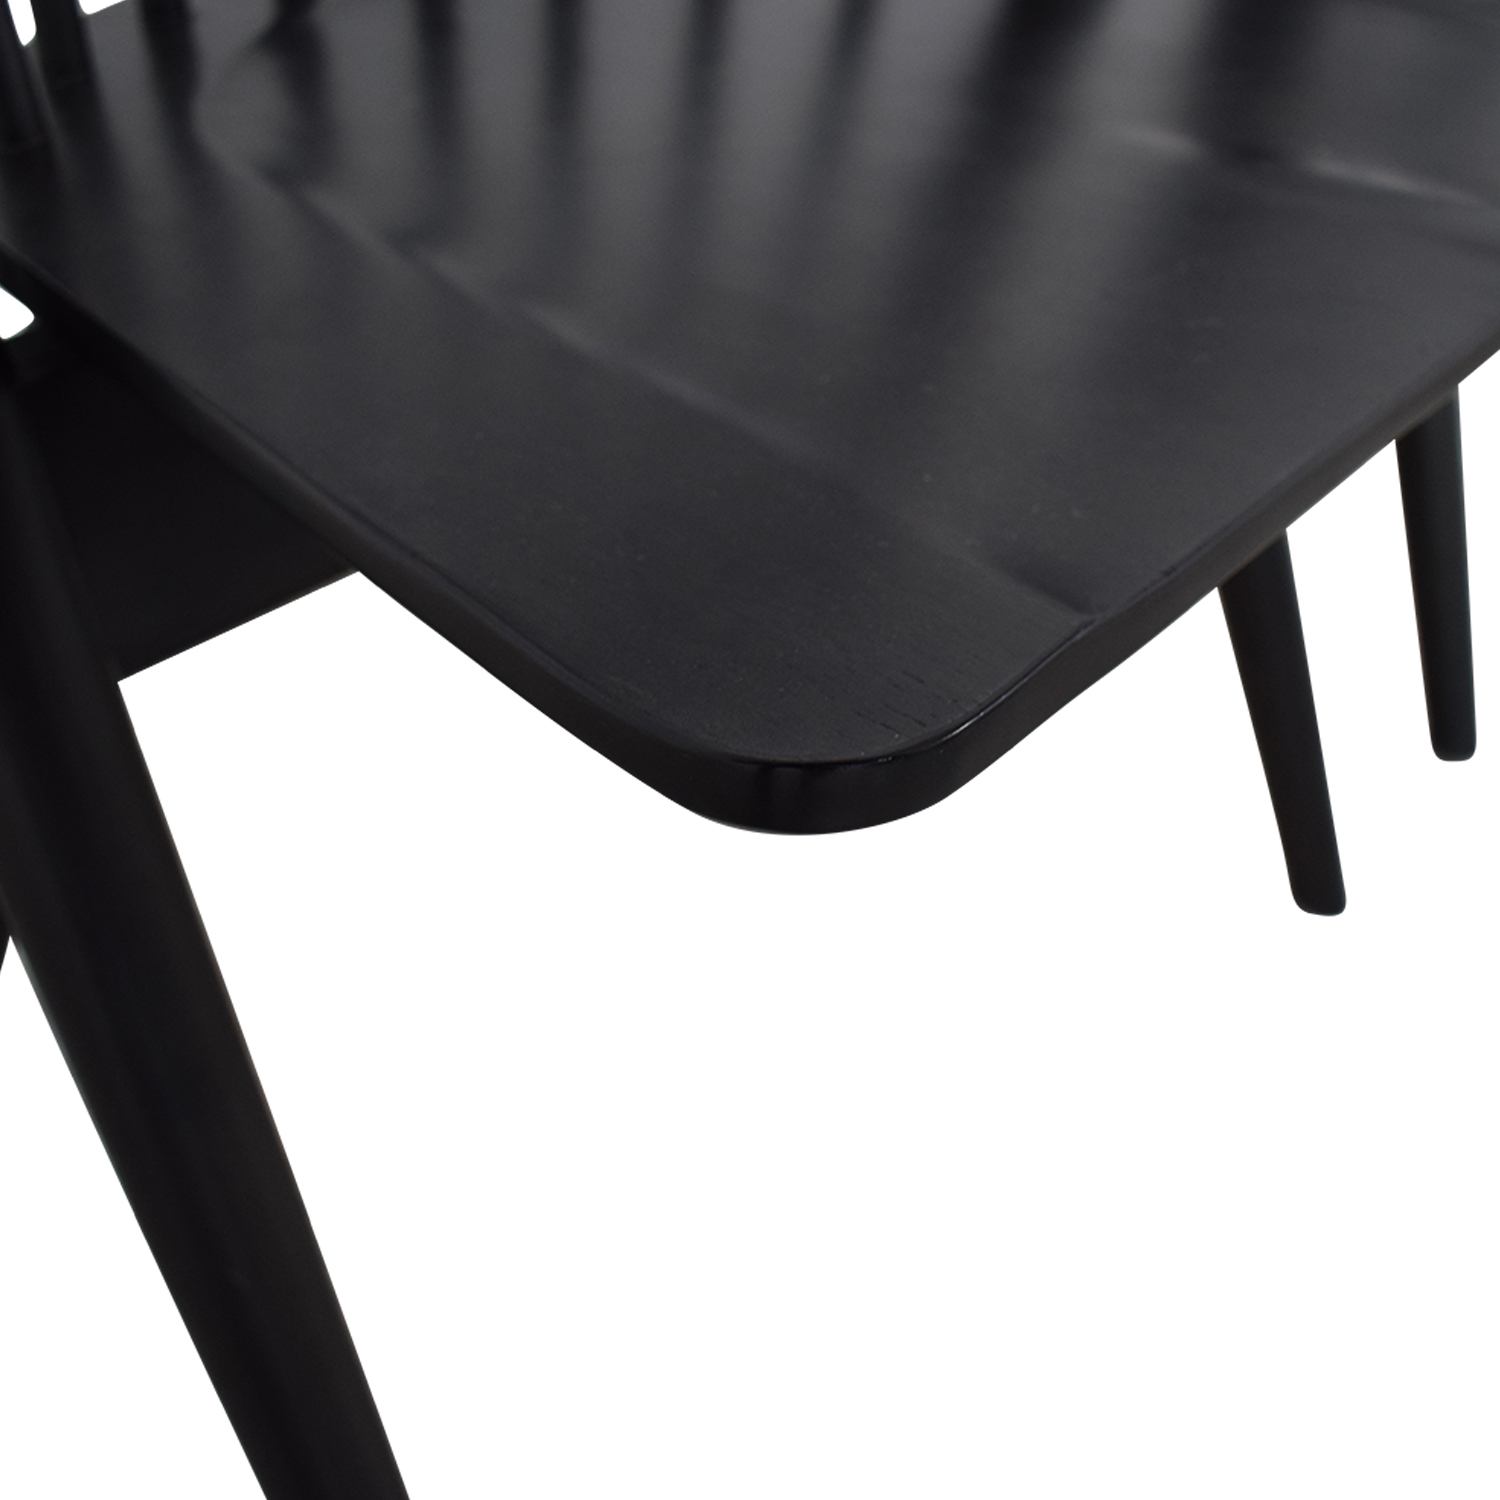 West Elm West Elm Black Spindle Chairs Dining Chairs